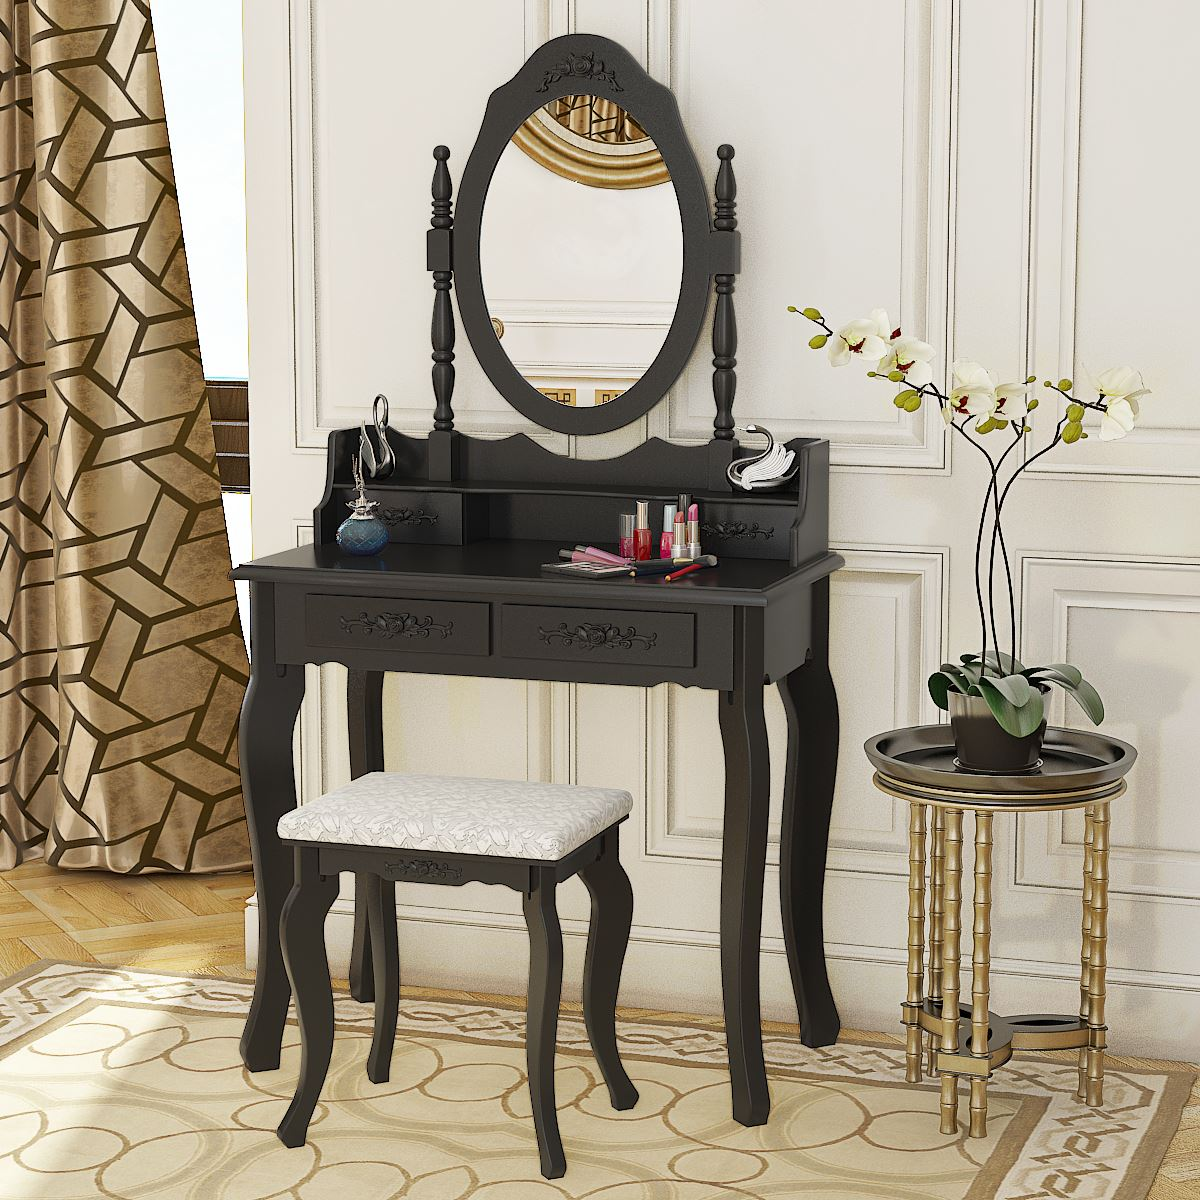 Panana 4 Drawers Vanity Table Set Dressing Table With Cushioned Stool Bedroom Makeup Table Coiffeuse / Tocador Ship In Normally